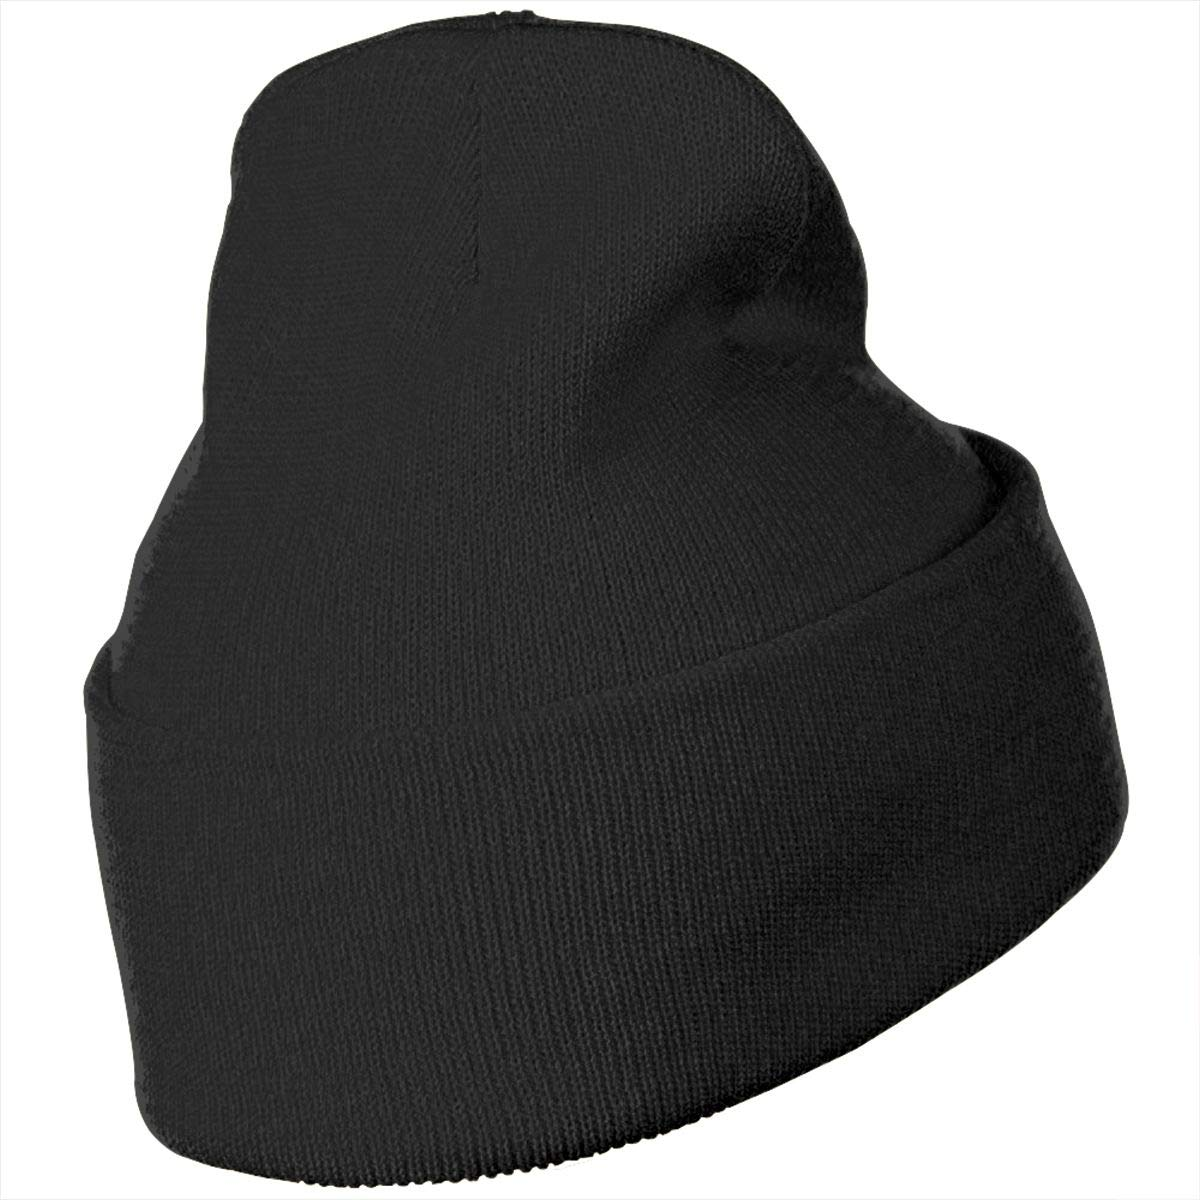 Eye Of The Angel Switzerland Black Beanie Hat for Men and Women Winter Warm Hats Knit Slouchy Thick Skull Cap